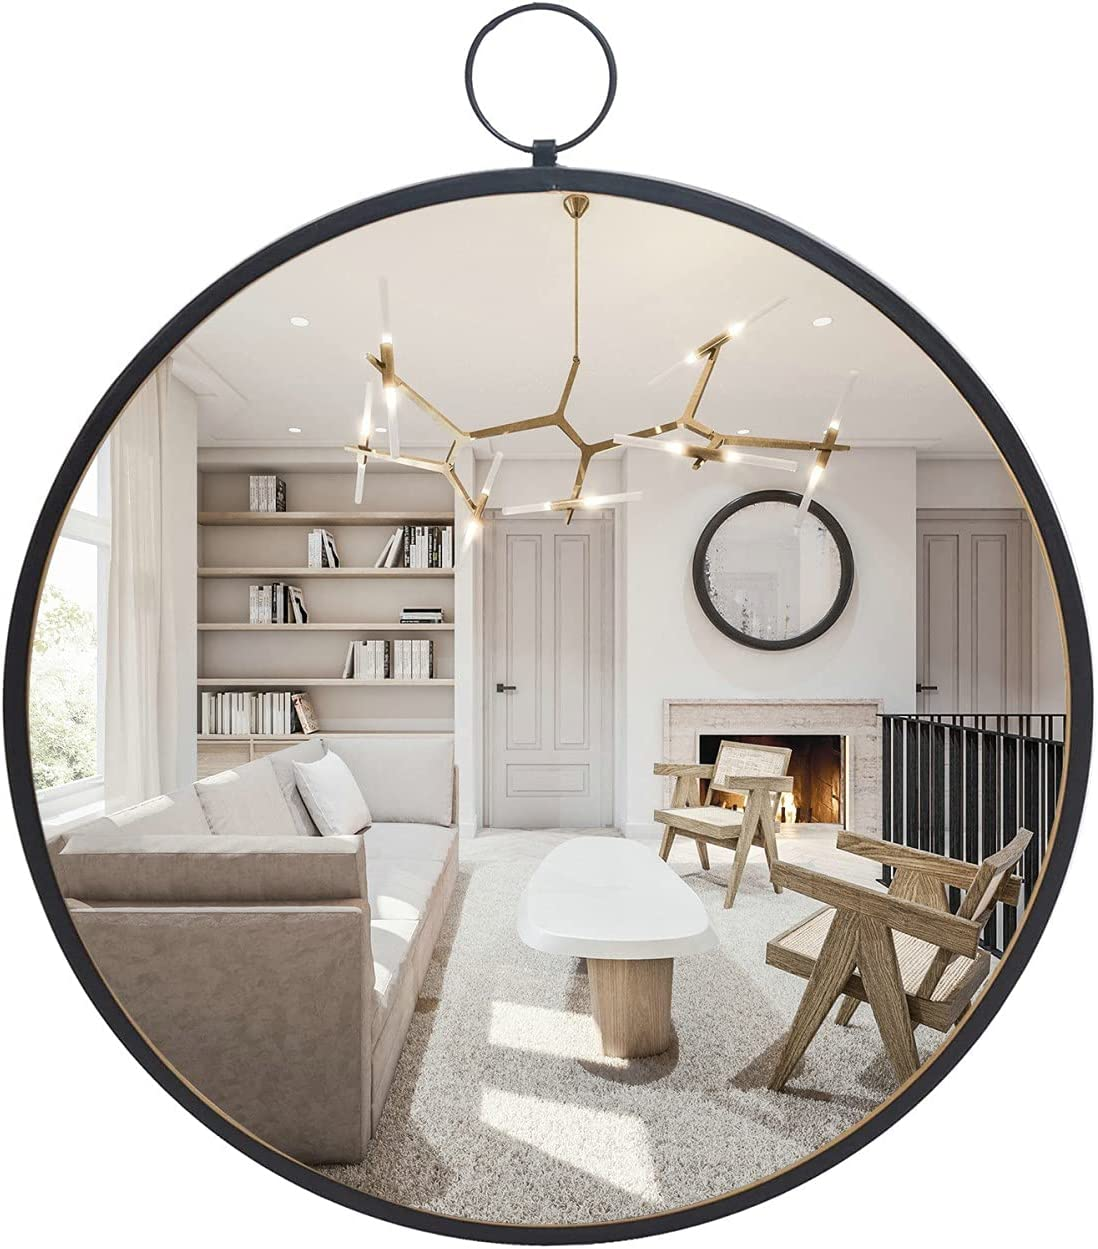 Amazon Com Black 20 Round Wall Circle Mirror With Metal Frame For Bathroom Bedroom Living Room Dining Room Wall Decor Kitchen Dining